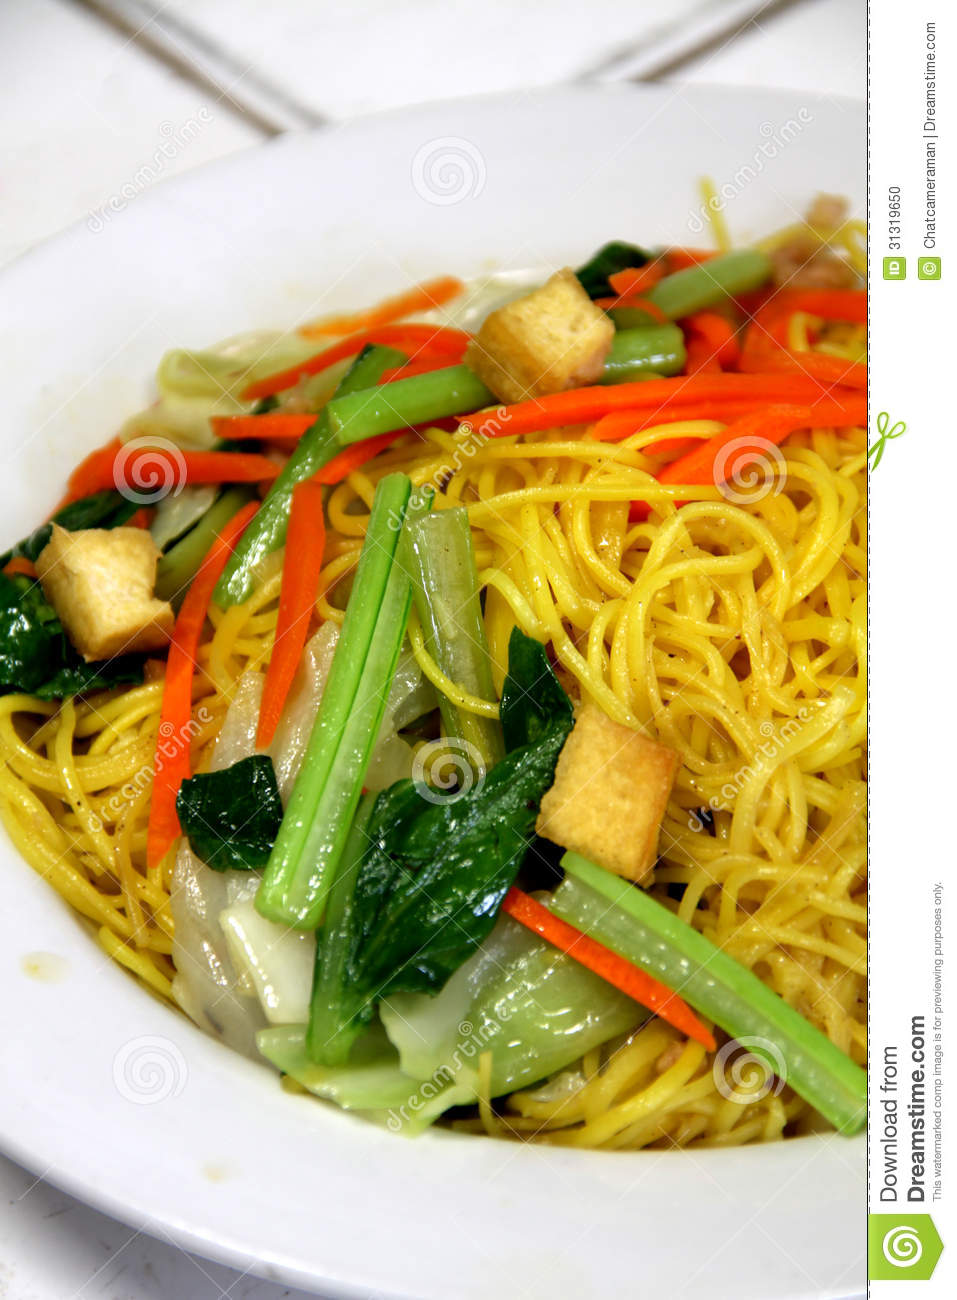 Delicious Stir-fried rice noodles colorful appetizing and Yummy on ...